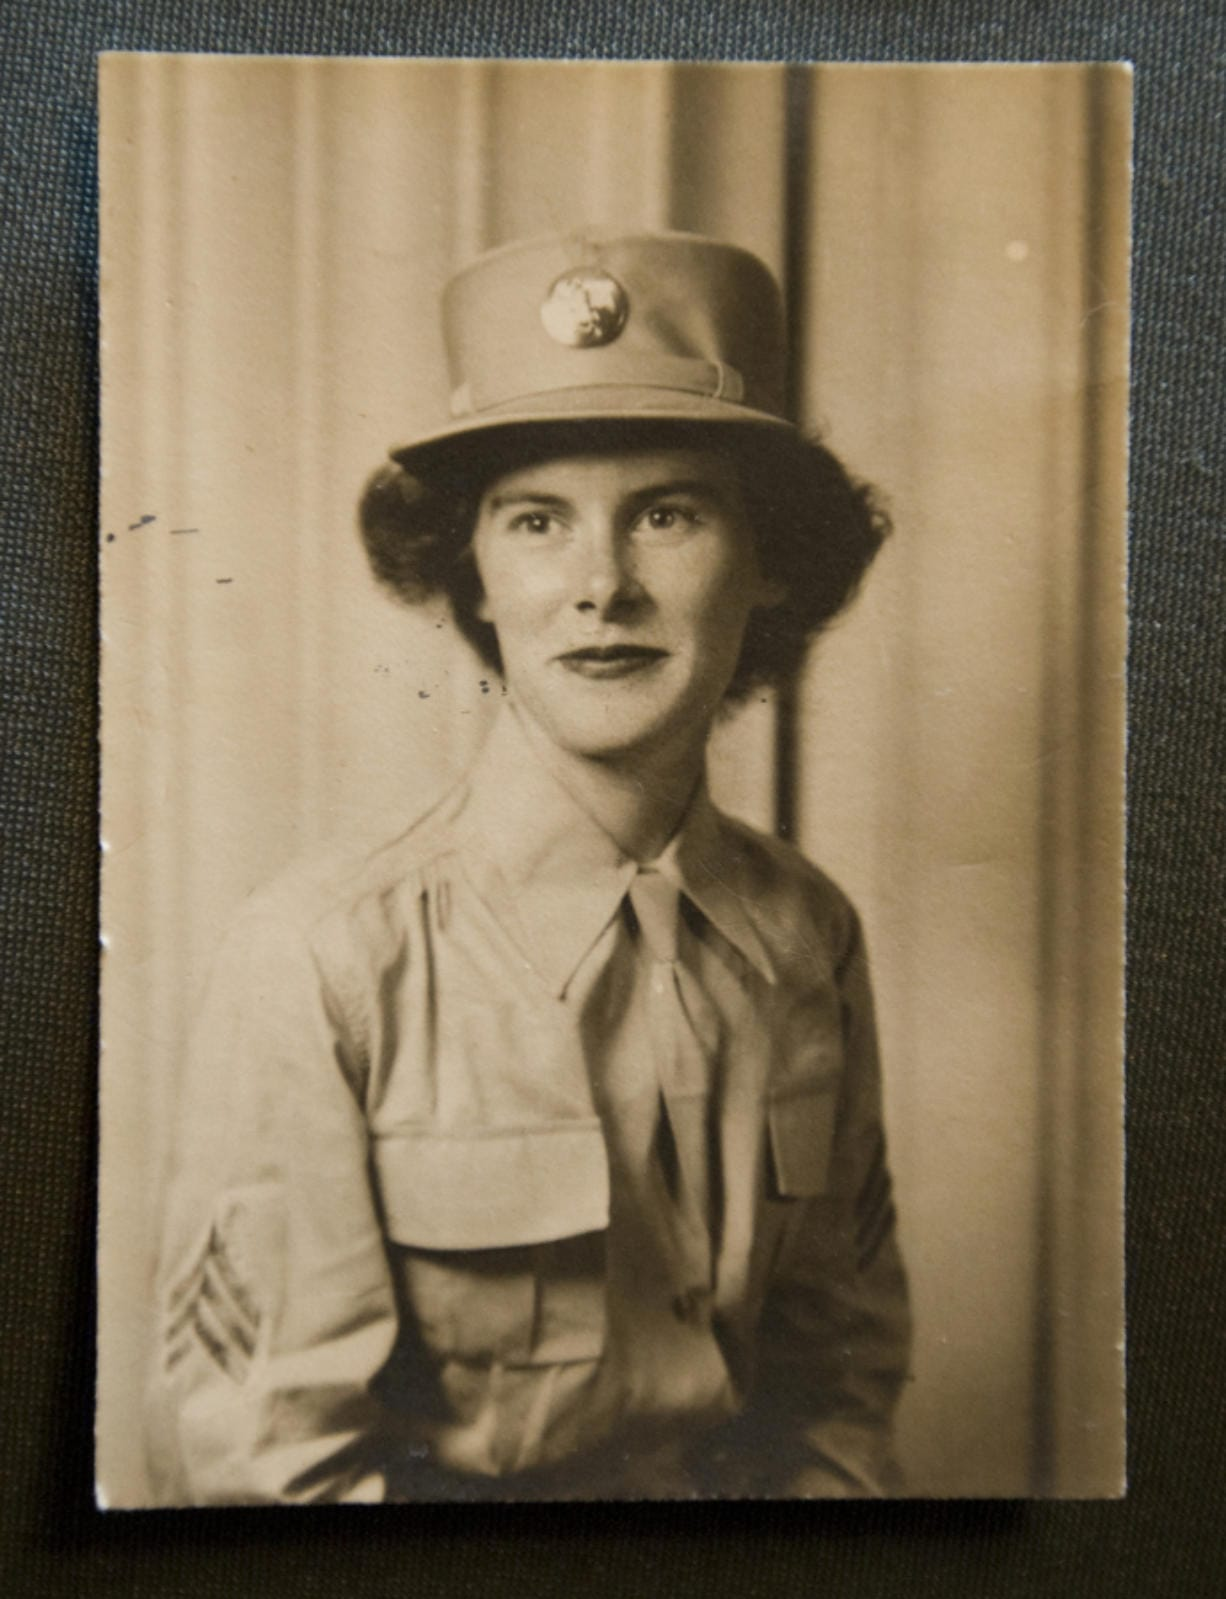 The Columbian file photos Dorothy Dwyer of Ridgefield, shown during her military career, right, and in 2009, above, was a World War II WAC and served in Gen. Eisenhower's headquarters in Algiers.